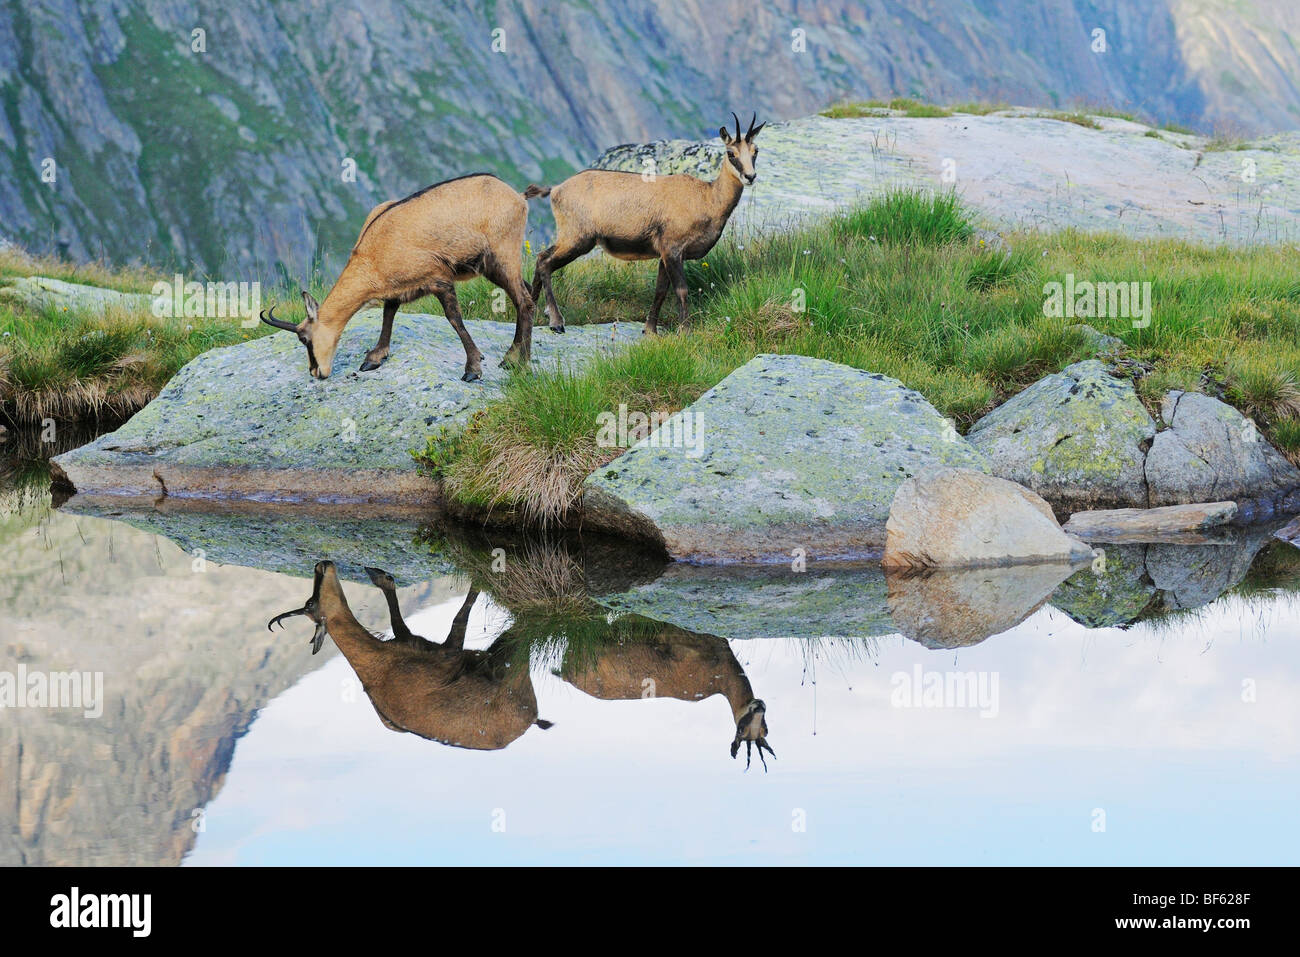 Chamois (Rupicapra rupicapra), adults with reflection in lake, Grimsel, Bern, Switzerland, Europe - Stock Image